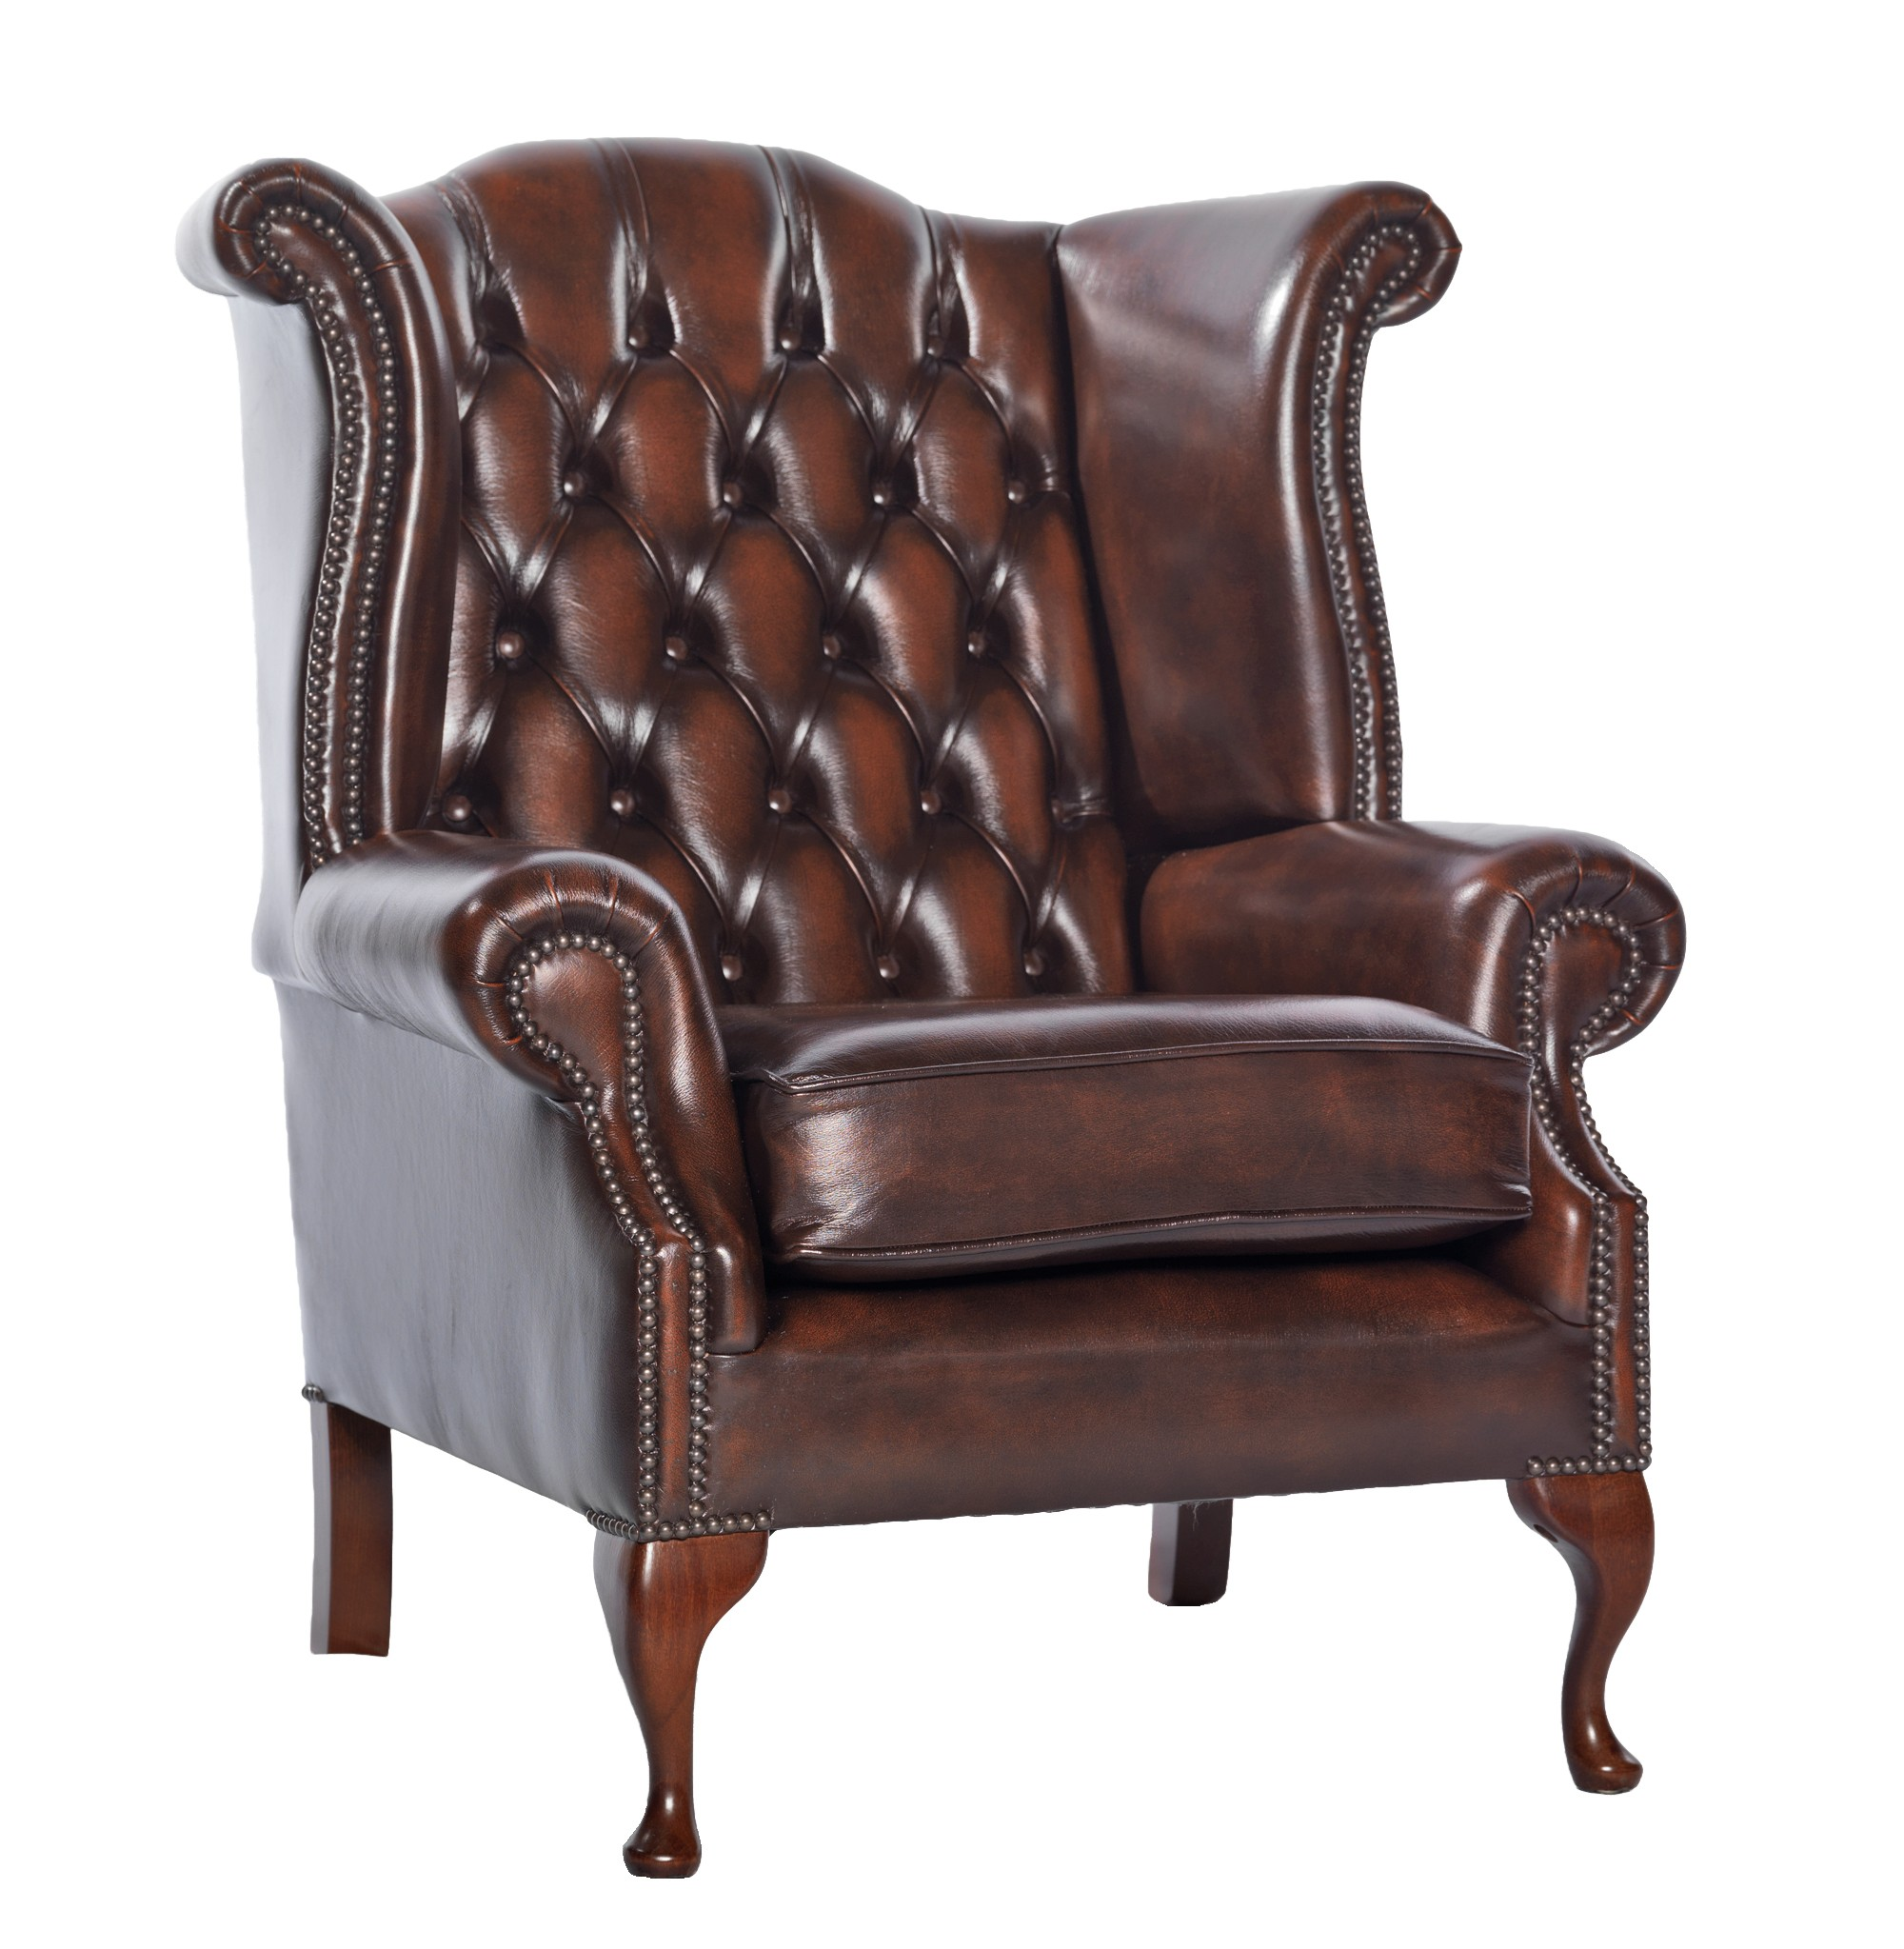 Fancy Leather Sofa Chair 16 For Modern Sofa Ideas with Leather Sofa Chair